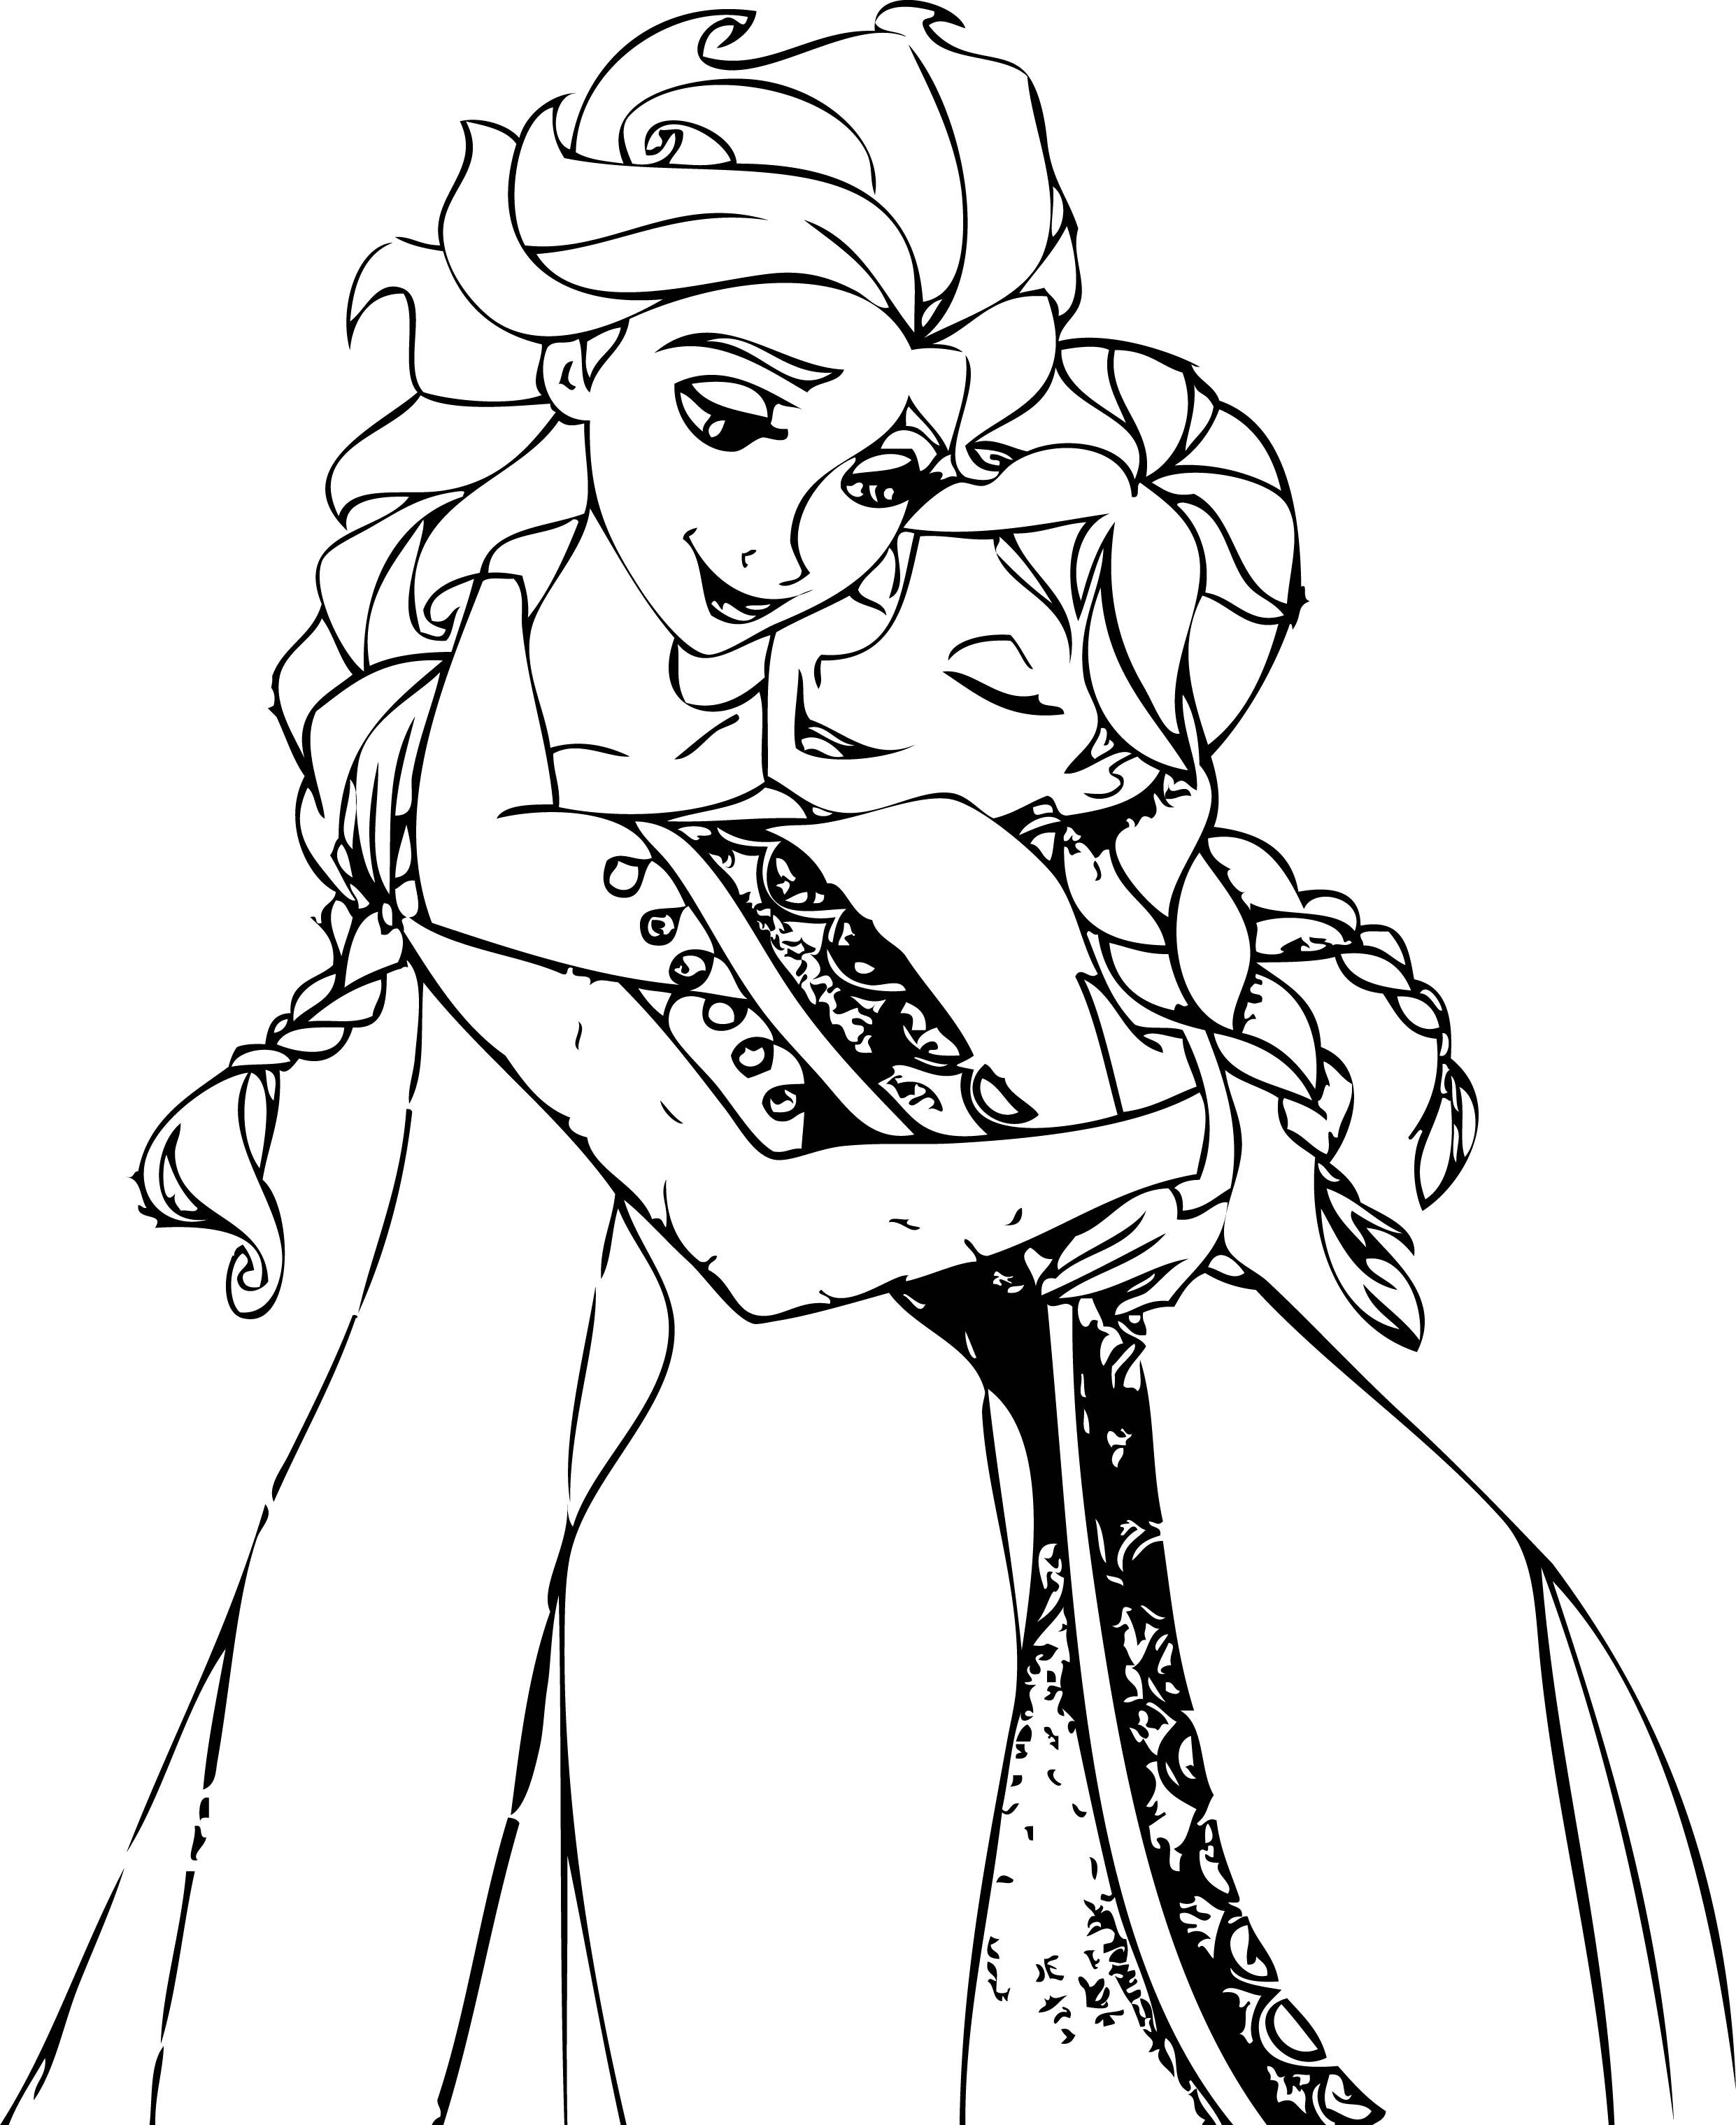 anna and elsa printables pin by claudia hueber on little girl things in 2020 elsa anna and elsa printables